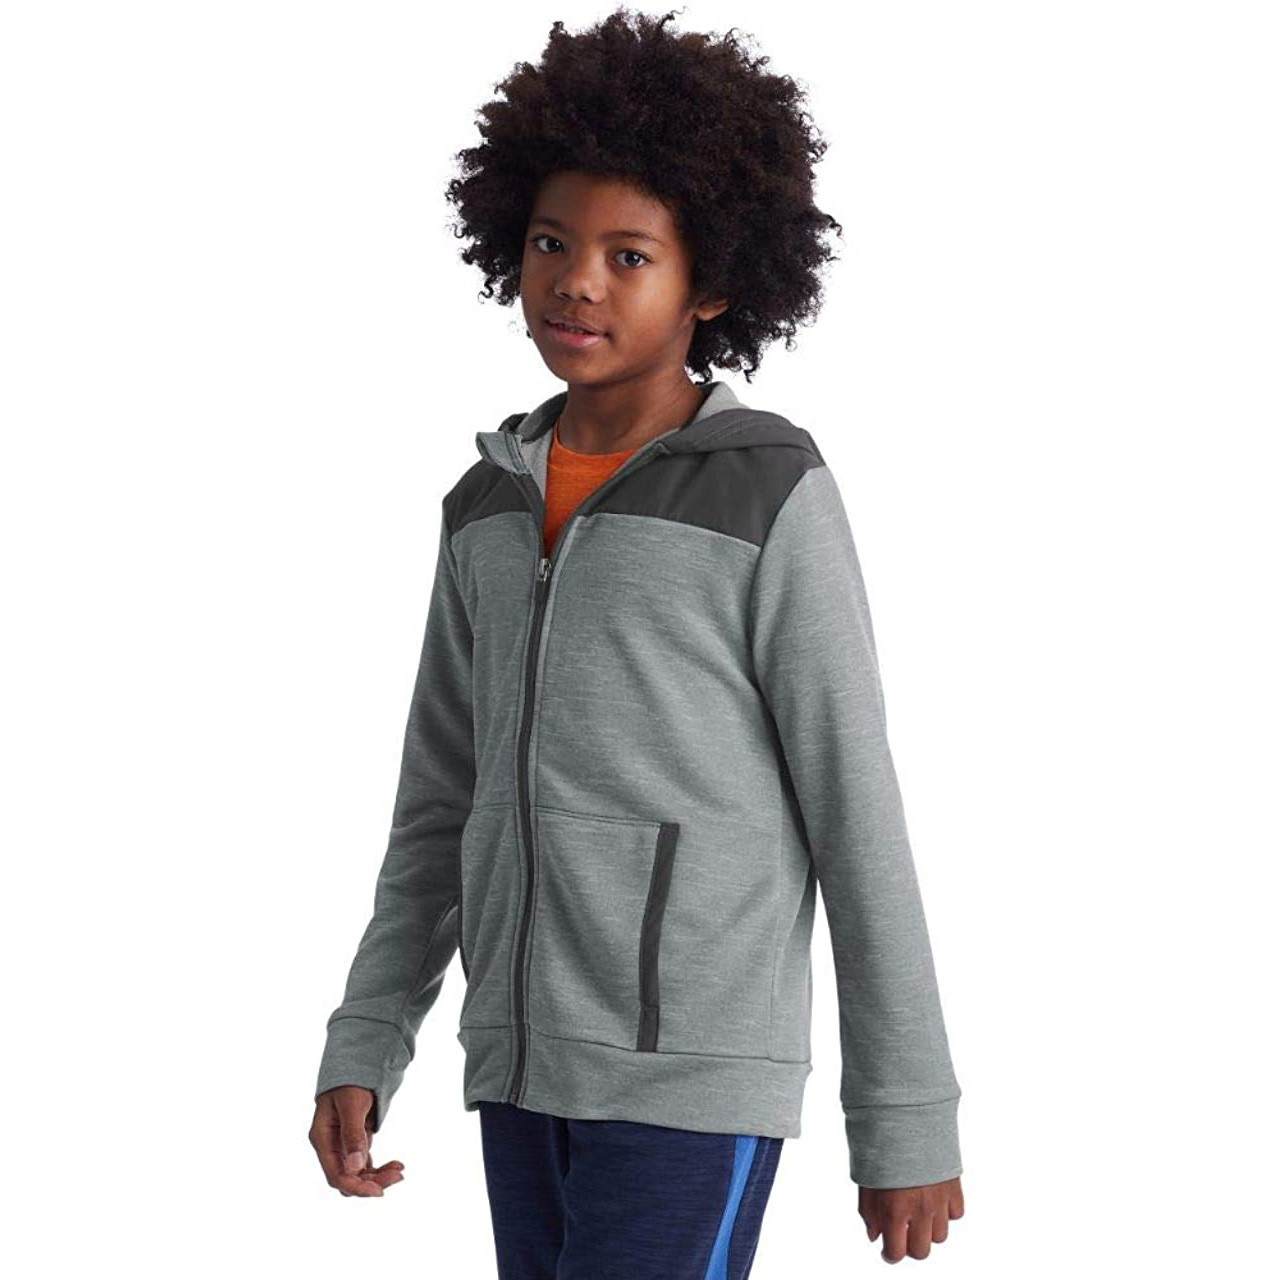 childrens gray zip up hoodie